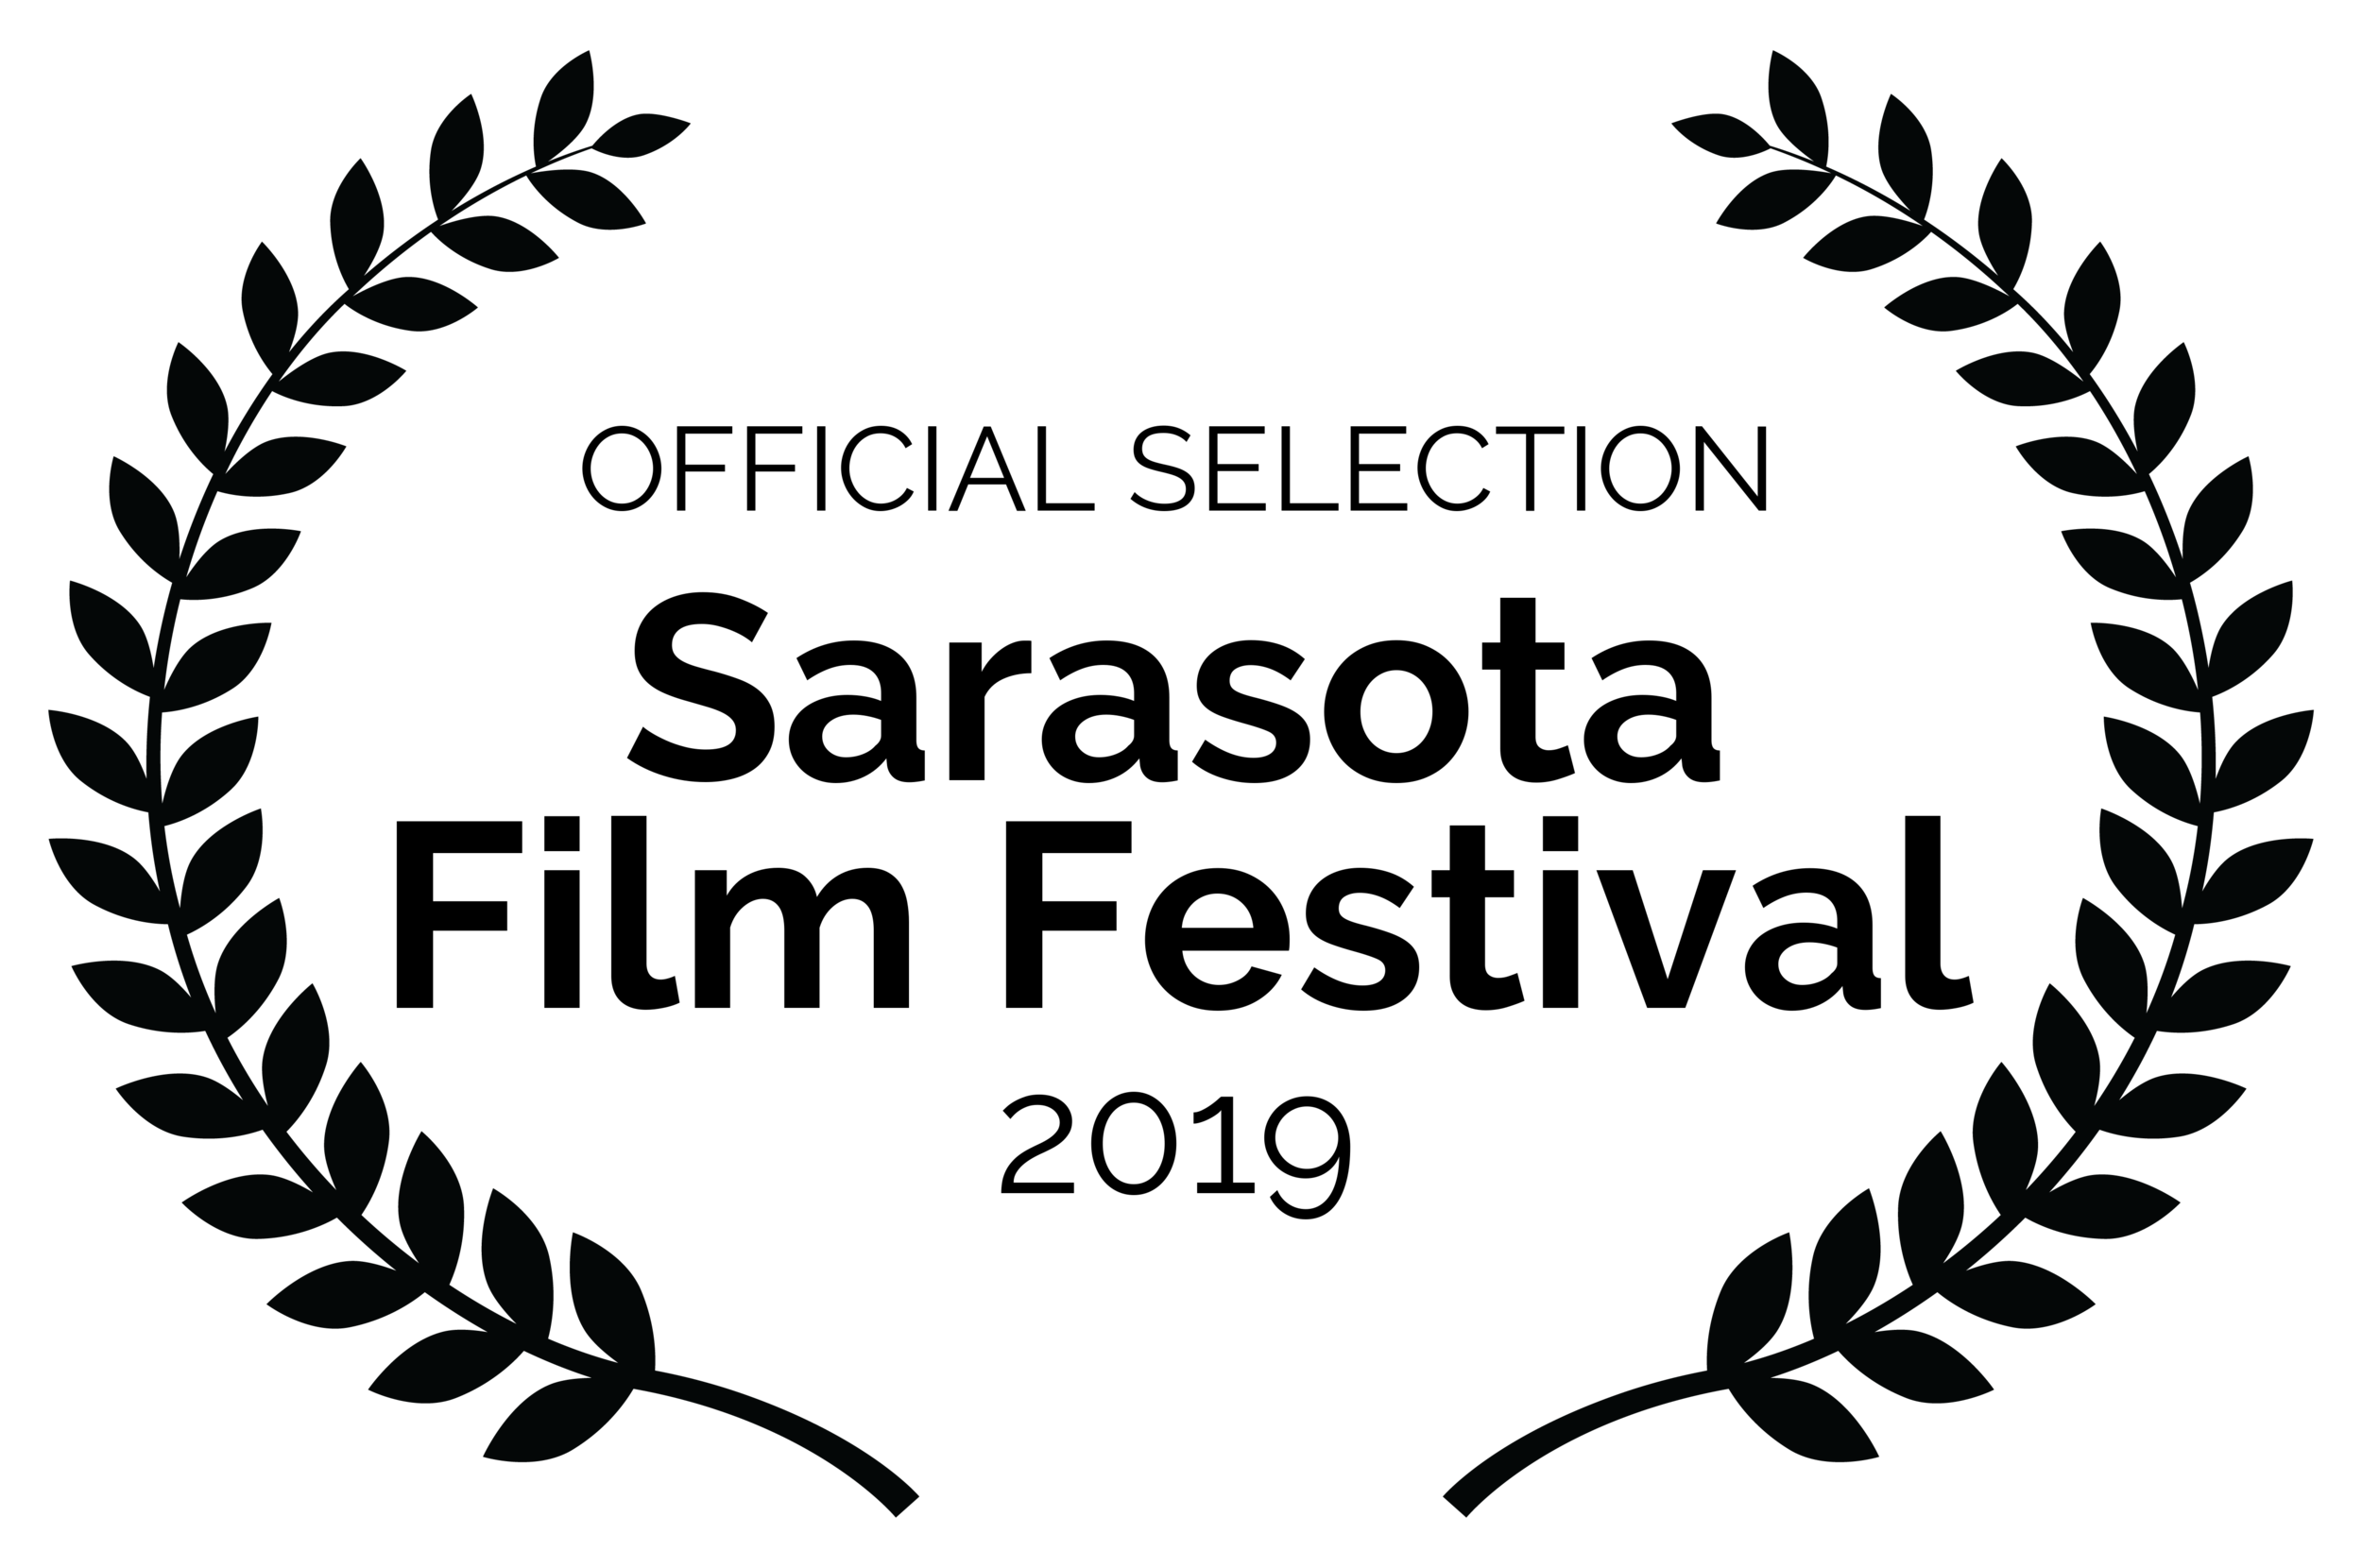 OFFICIALSELECTION-SarasotaFilmFestival-2019.png